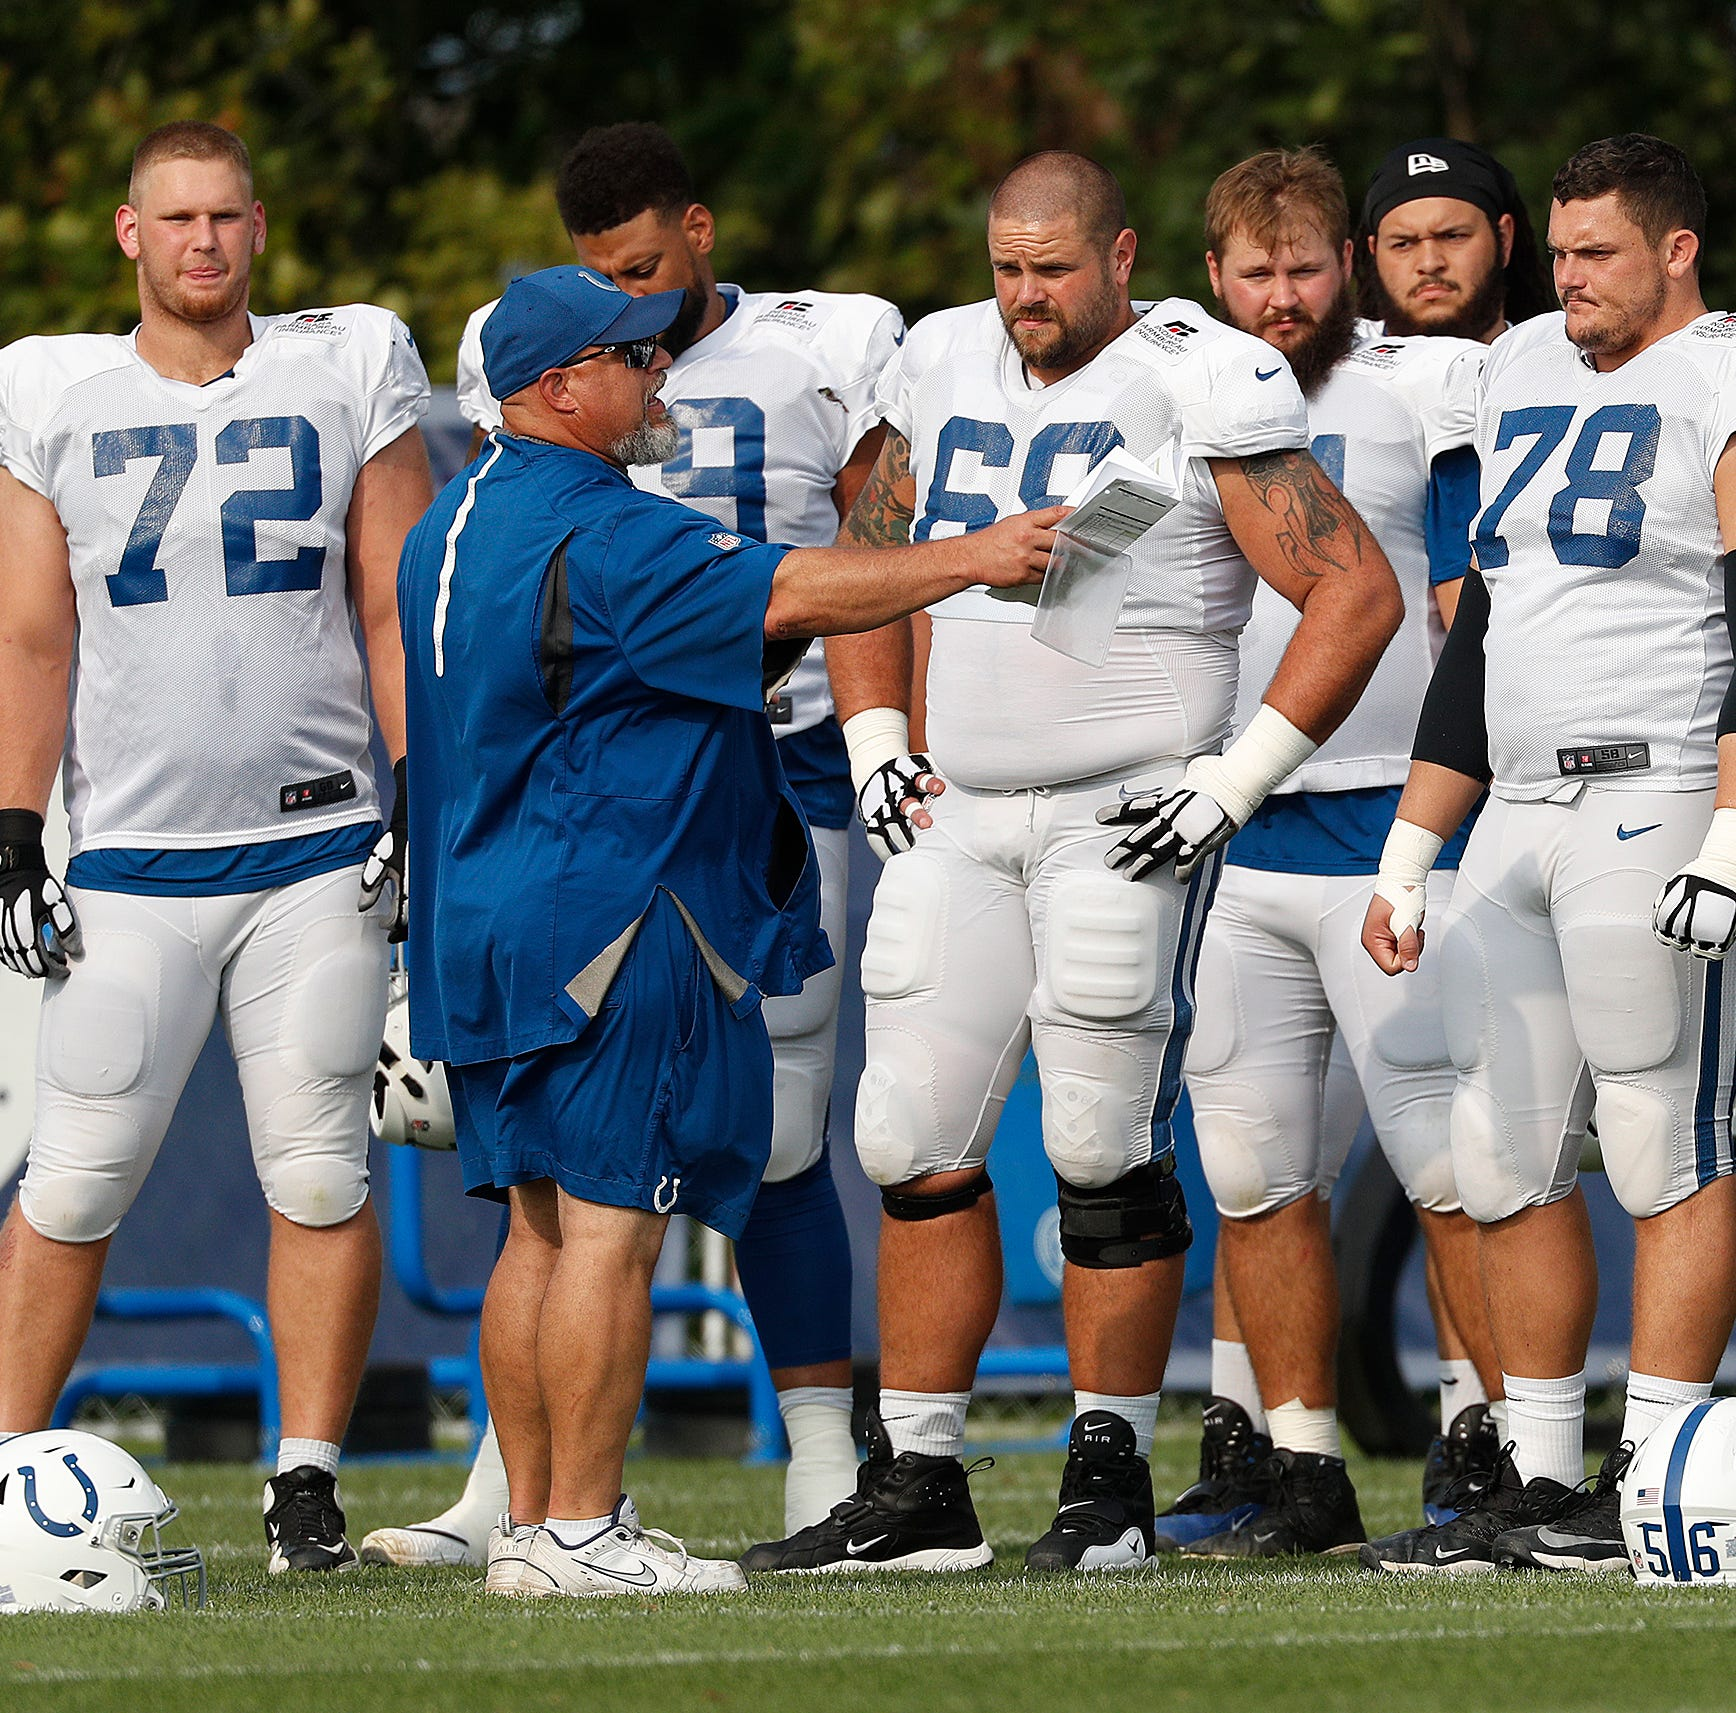 Insider: Coach Dave DeGuglielmo is the throwback the Colts' offensive line needs